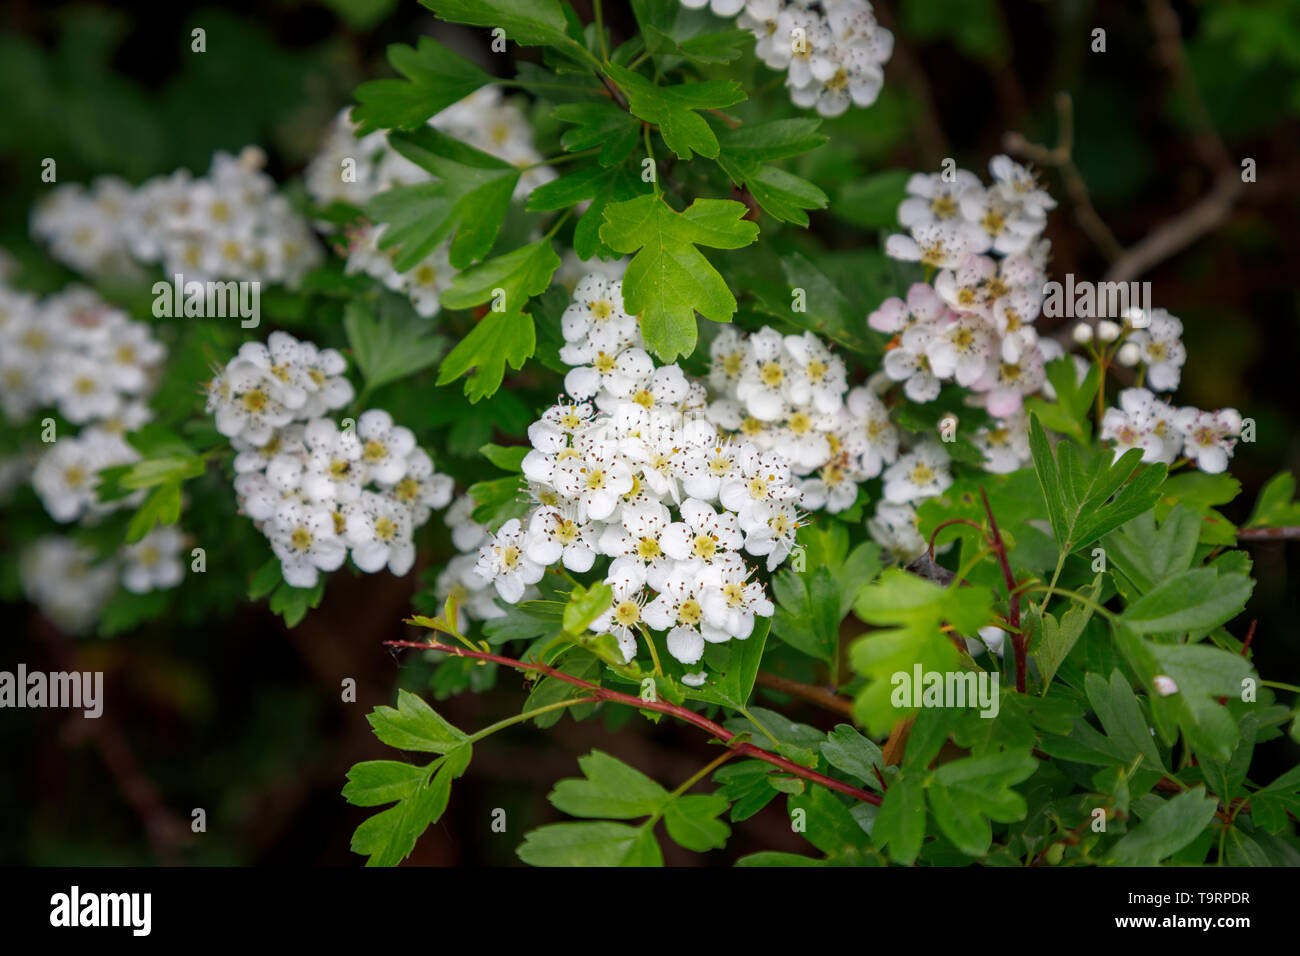 Hawthorn (crataegus) flowering in late spring / early summer in Test Valley, Southampton, Hampshire, southern England, UK Stock Photo